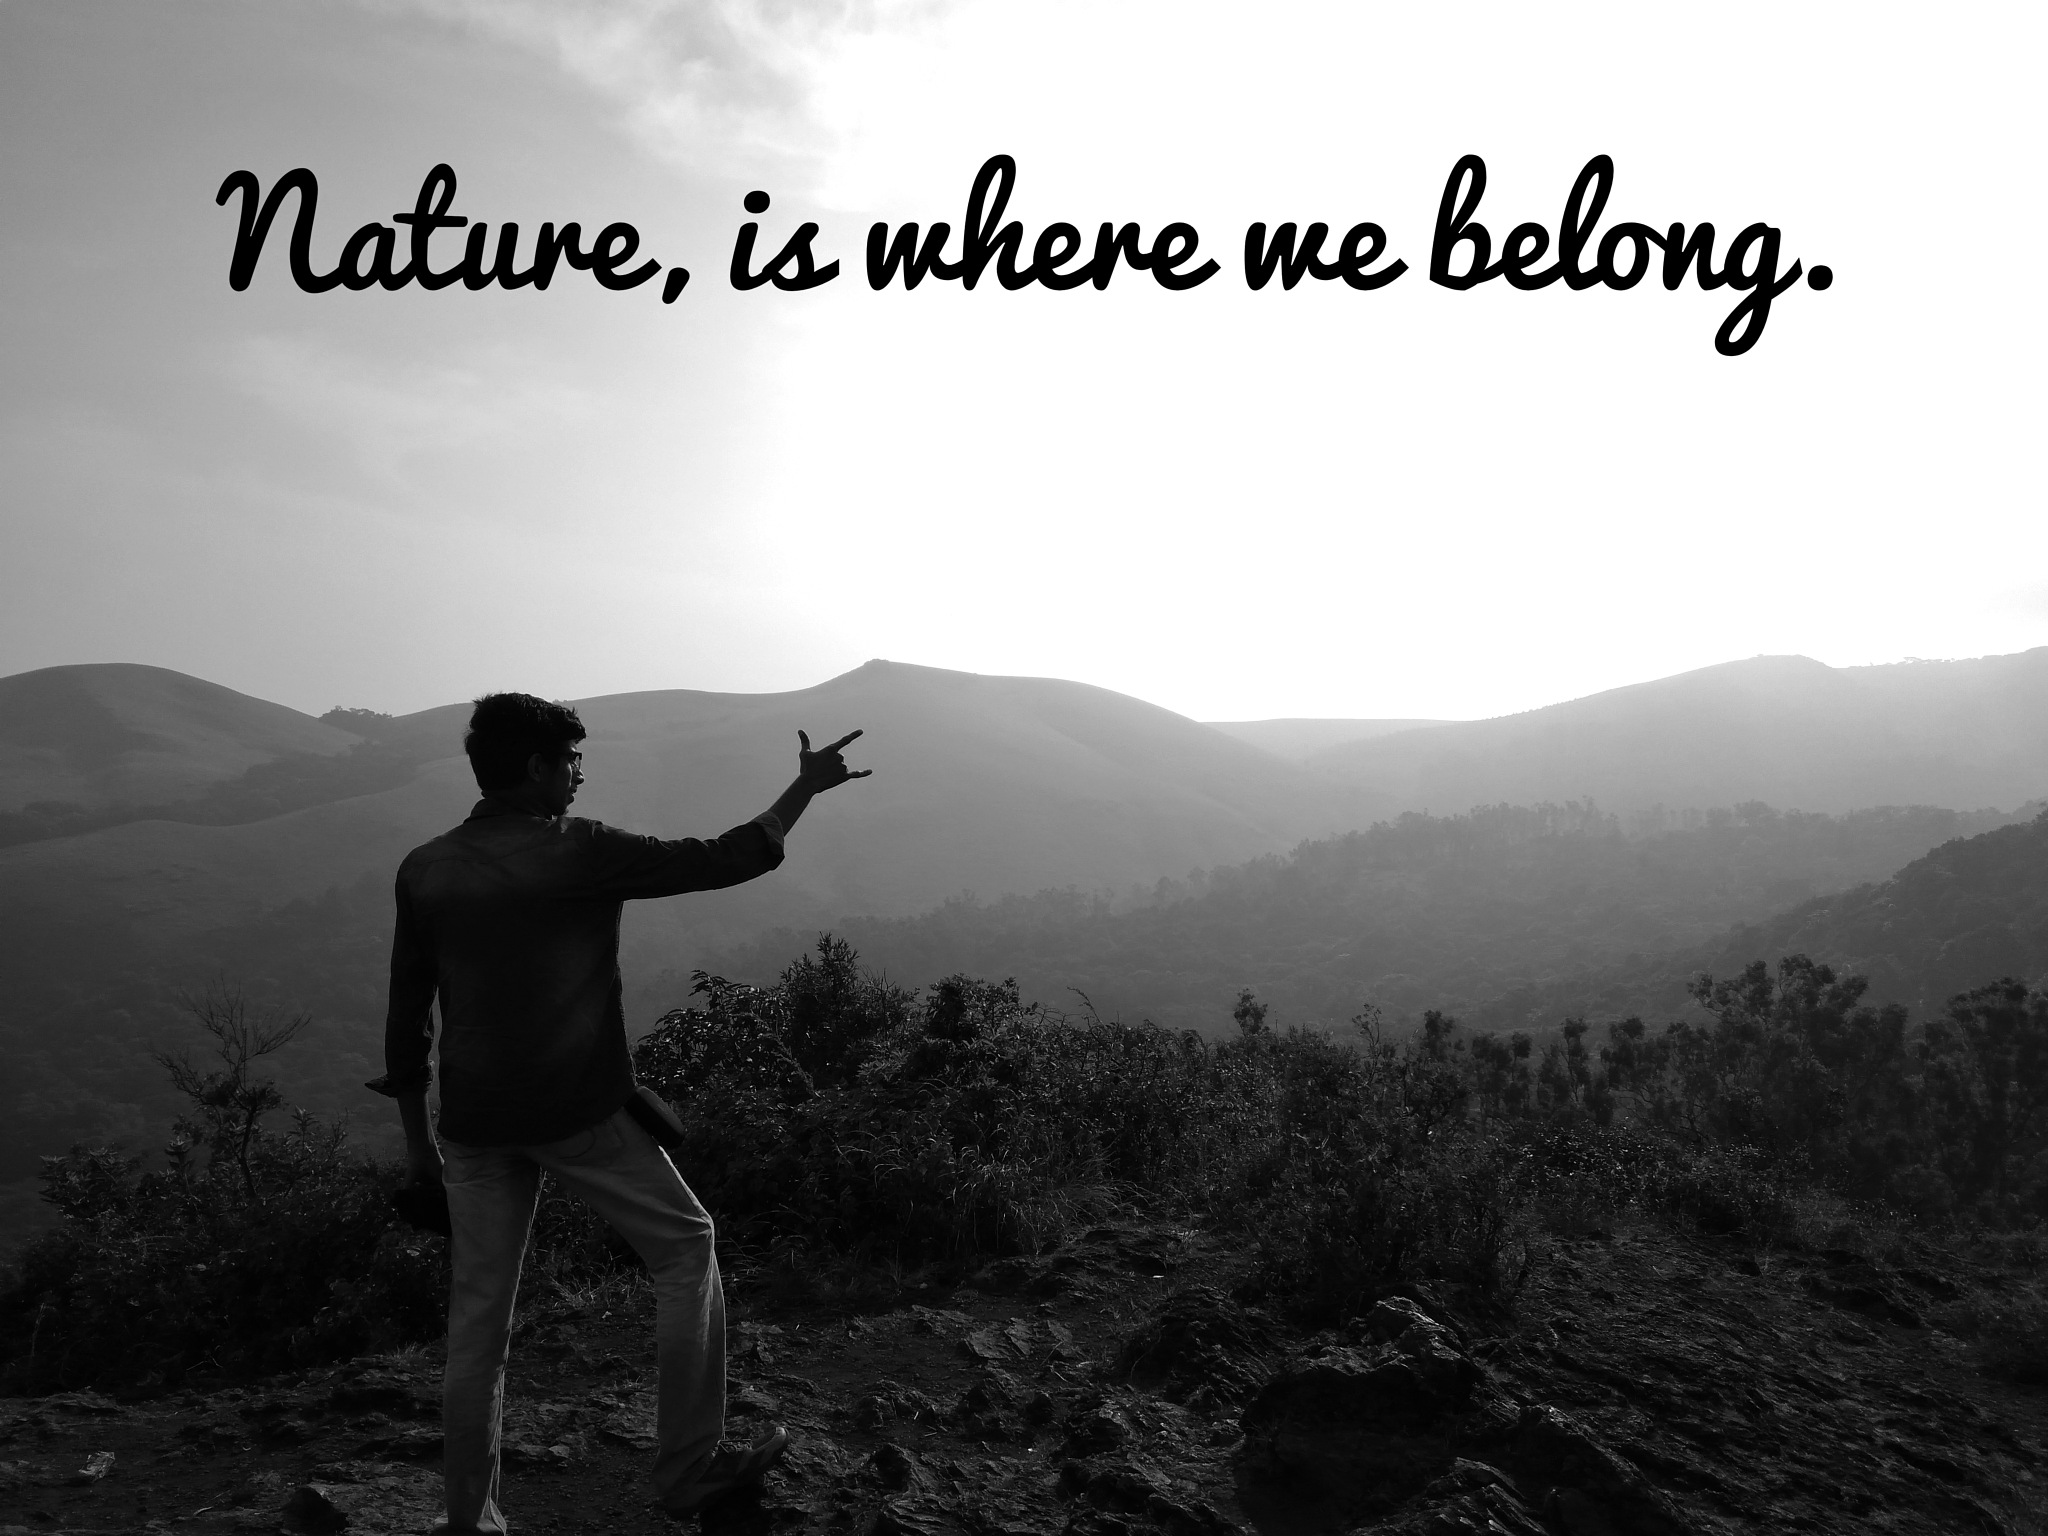 Nature is where we belong. by Vijayaram